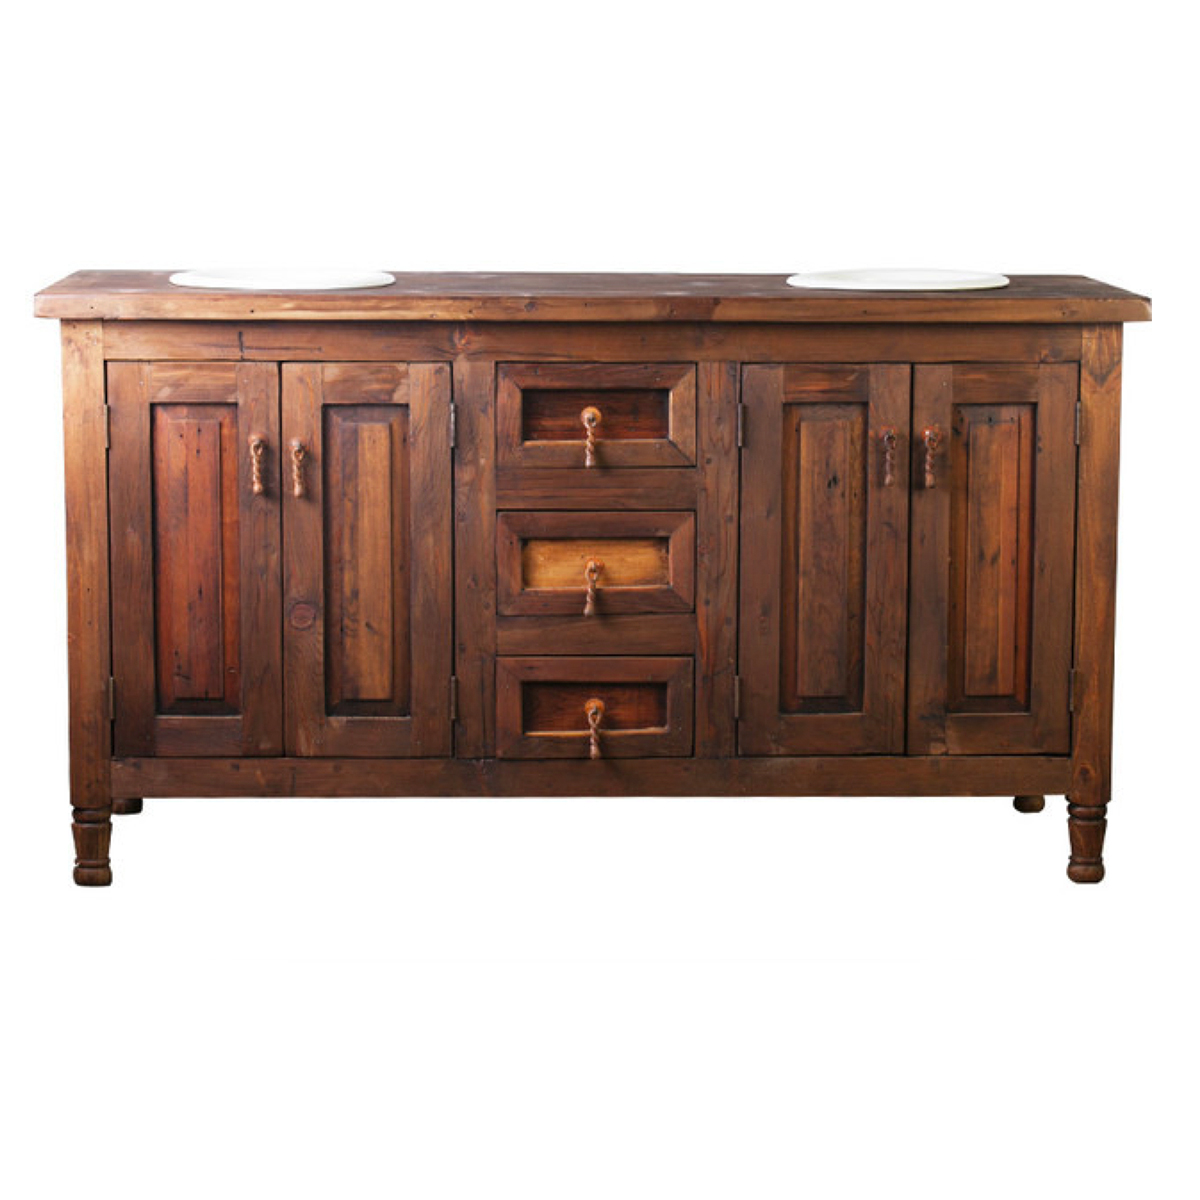 Double sink barnwood vanity made from reclaimed wood for sale Wooden bathroom furniture cabinets